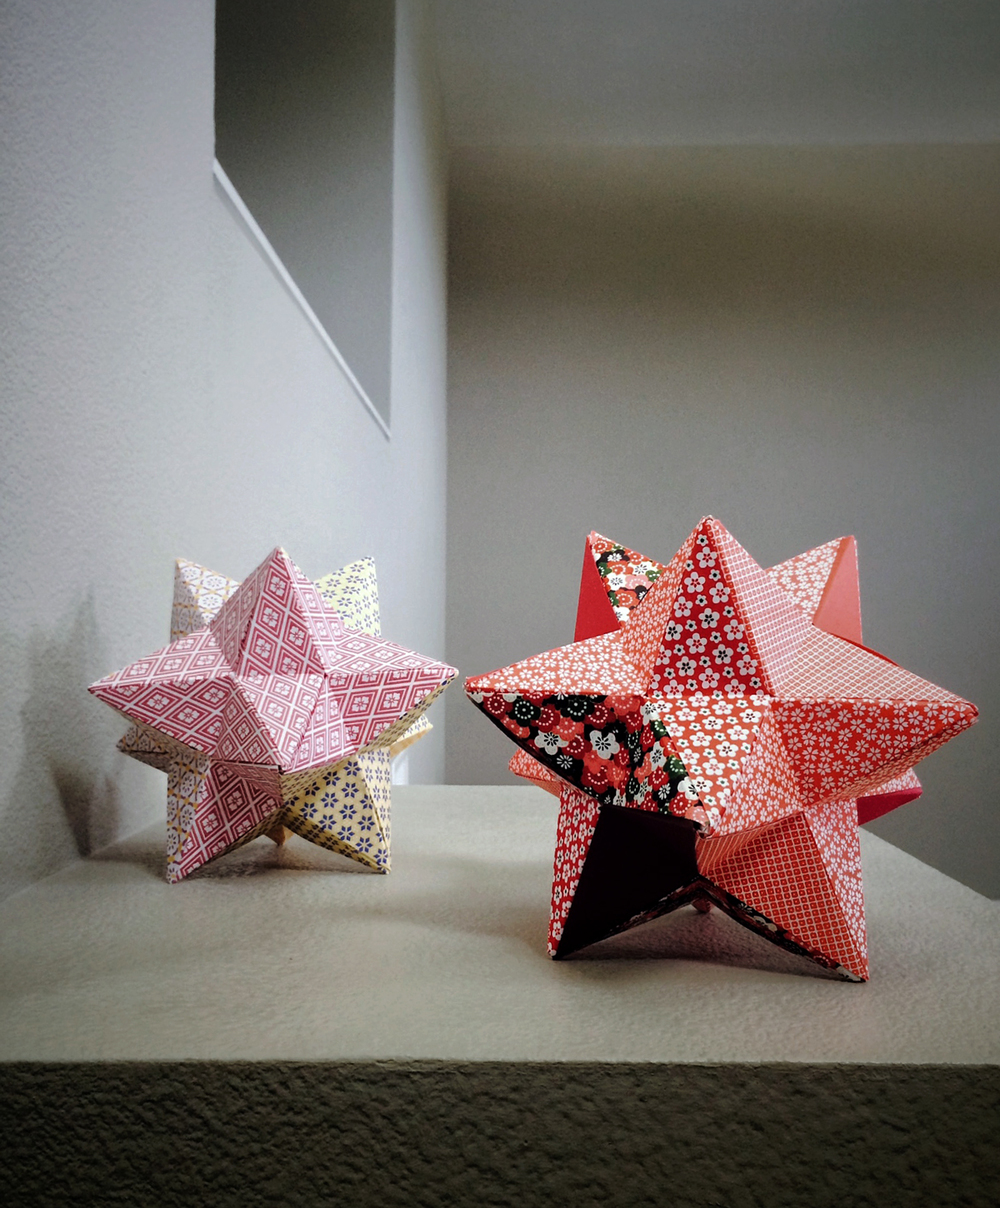 MYD studio origami // lesser stellated dodecahedrons